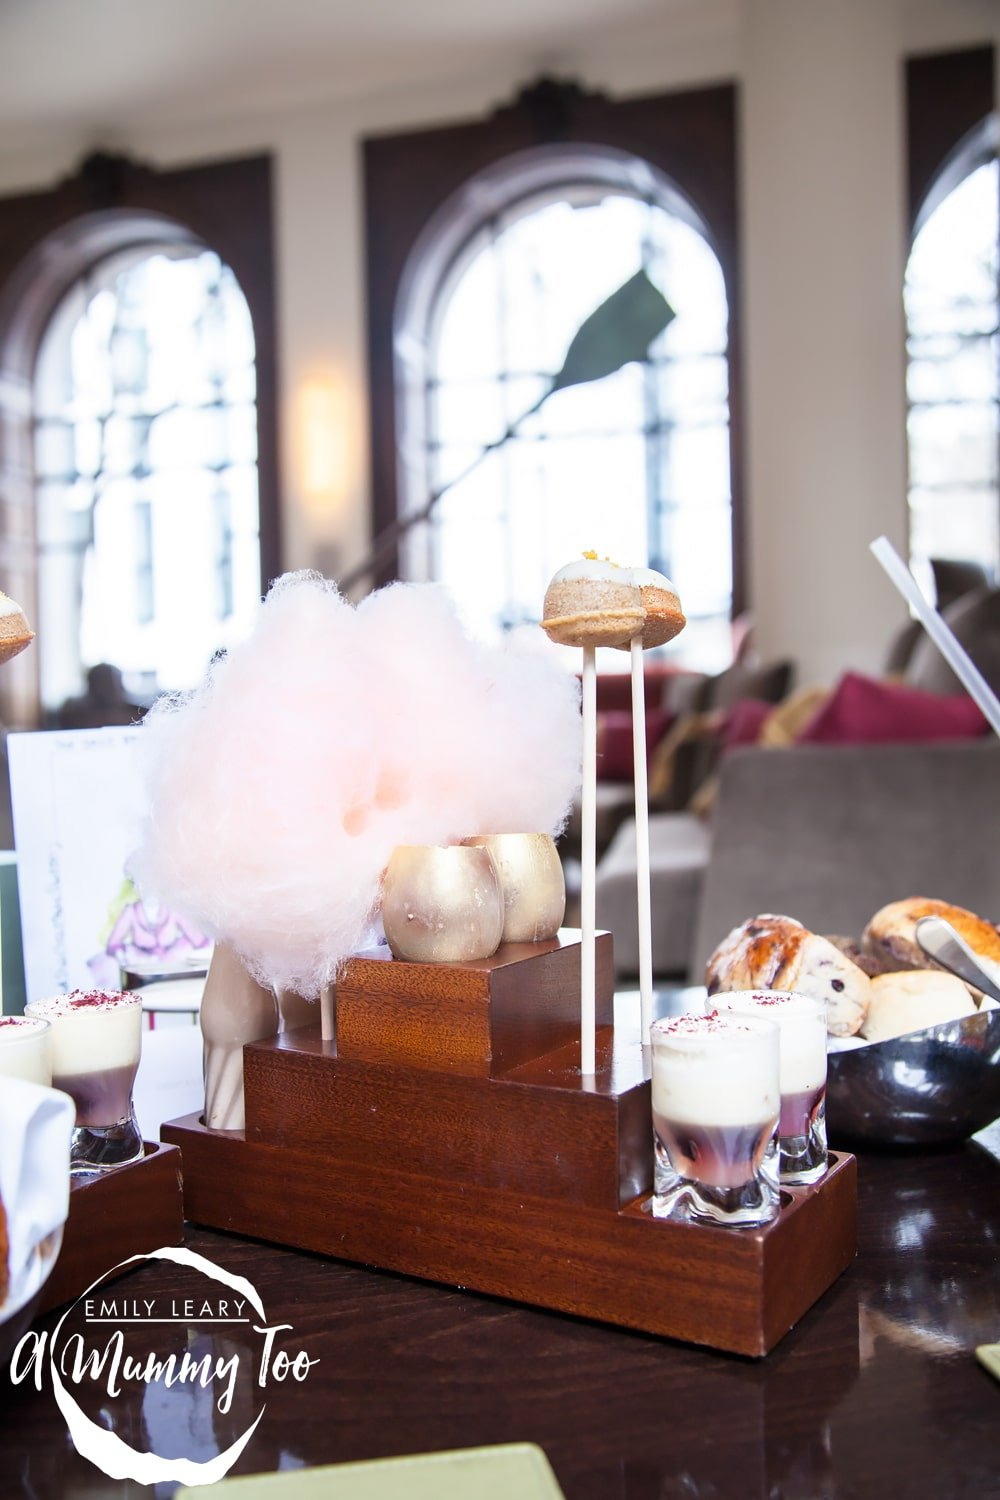 One-Aldwych-Afternoon-Tea-dessert-selection